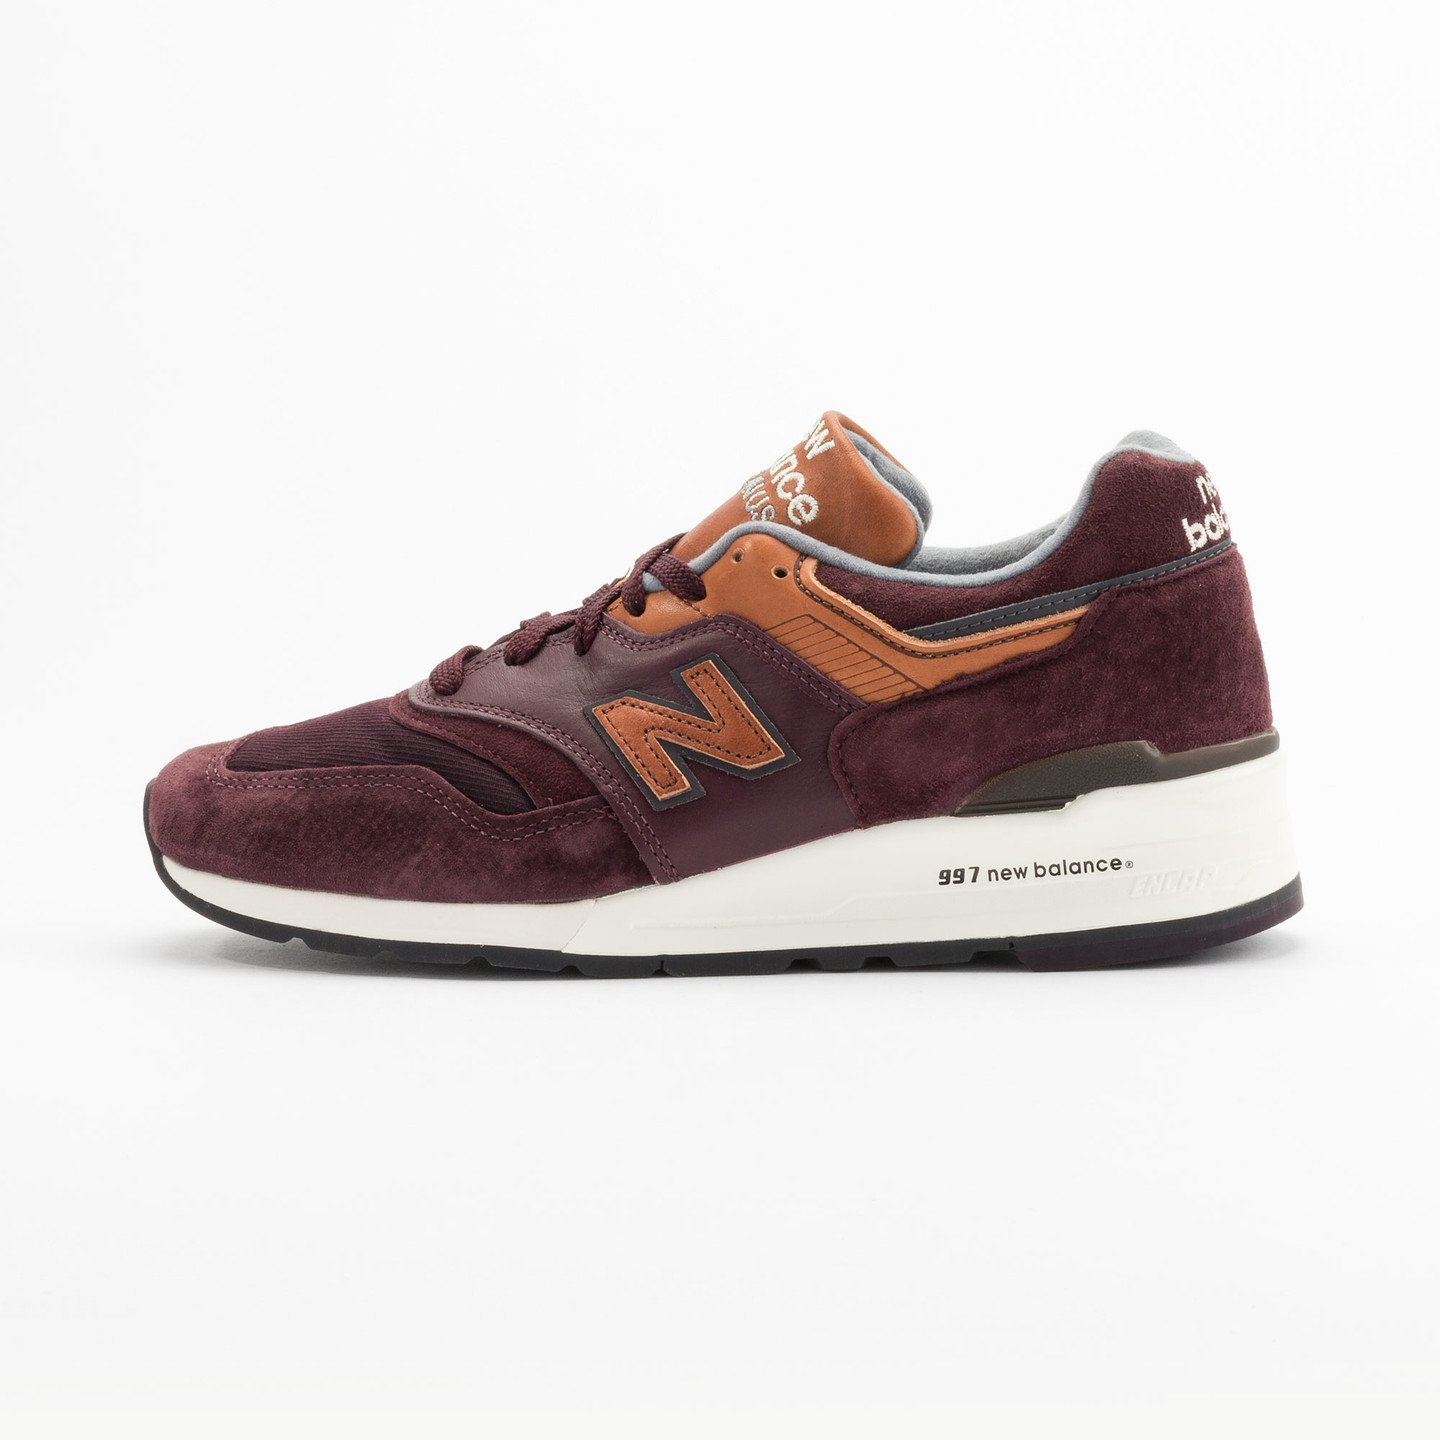 New Balance M997 Made in USA Burgundy / Light Brown M997DSLR-41.5